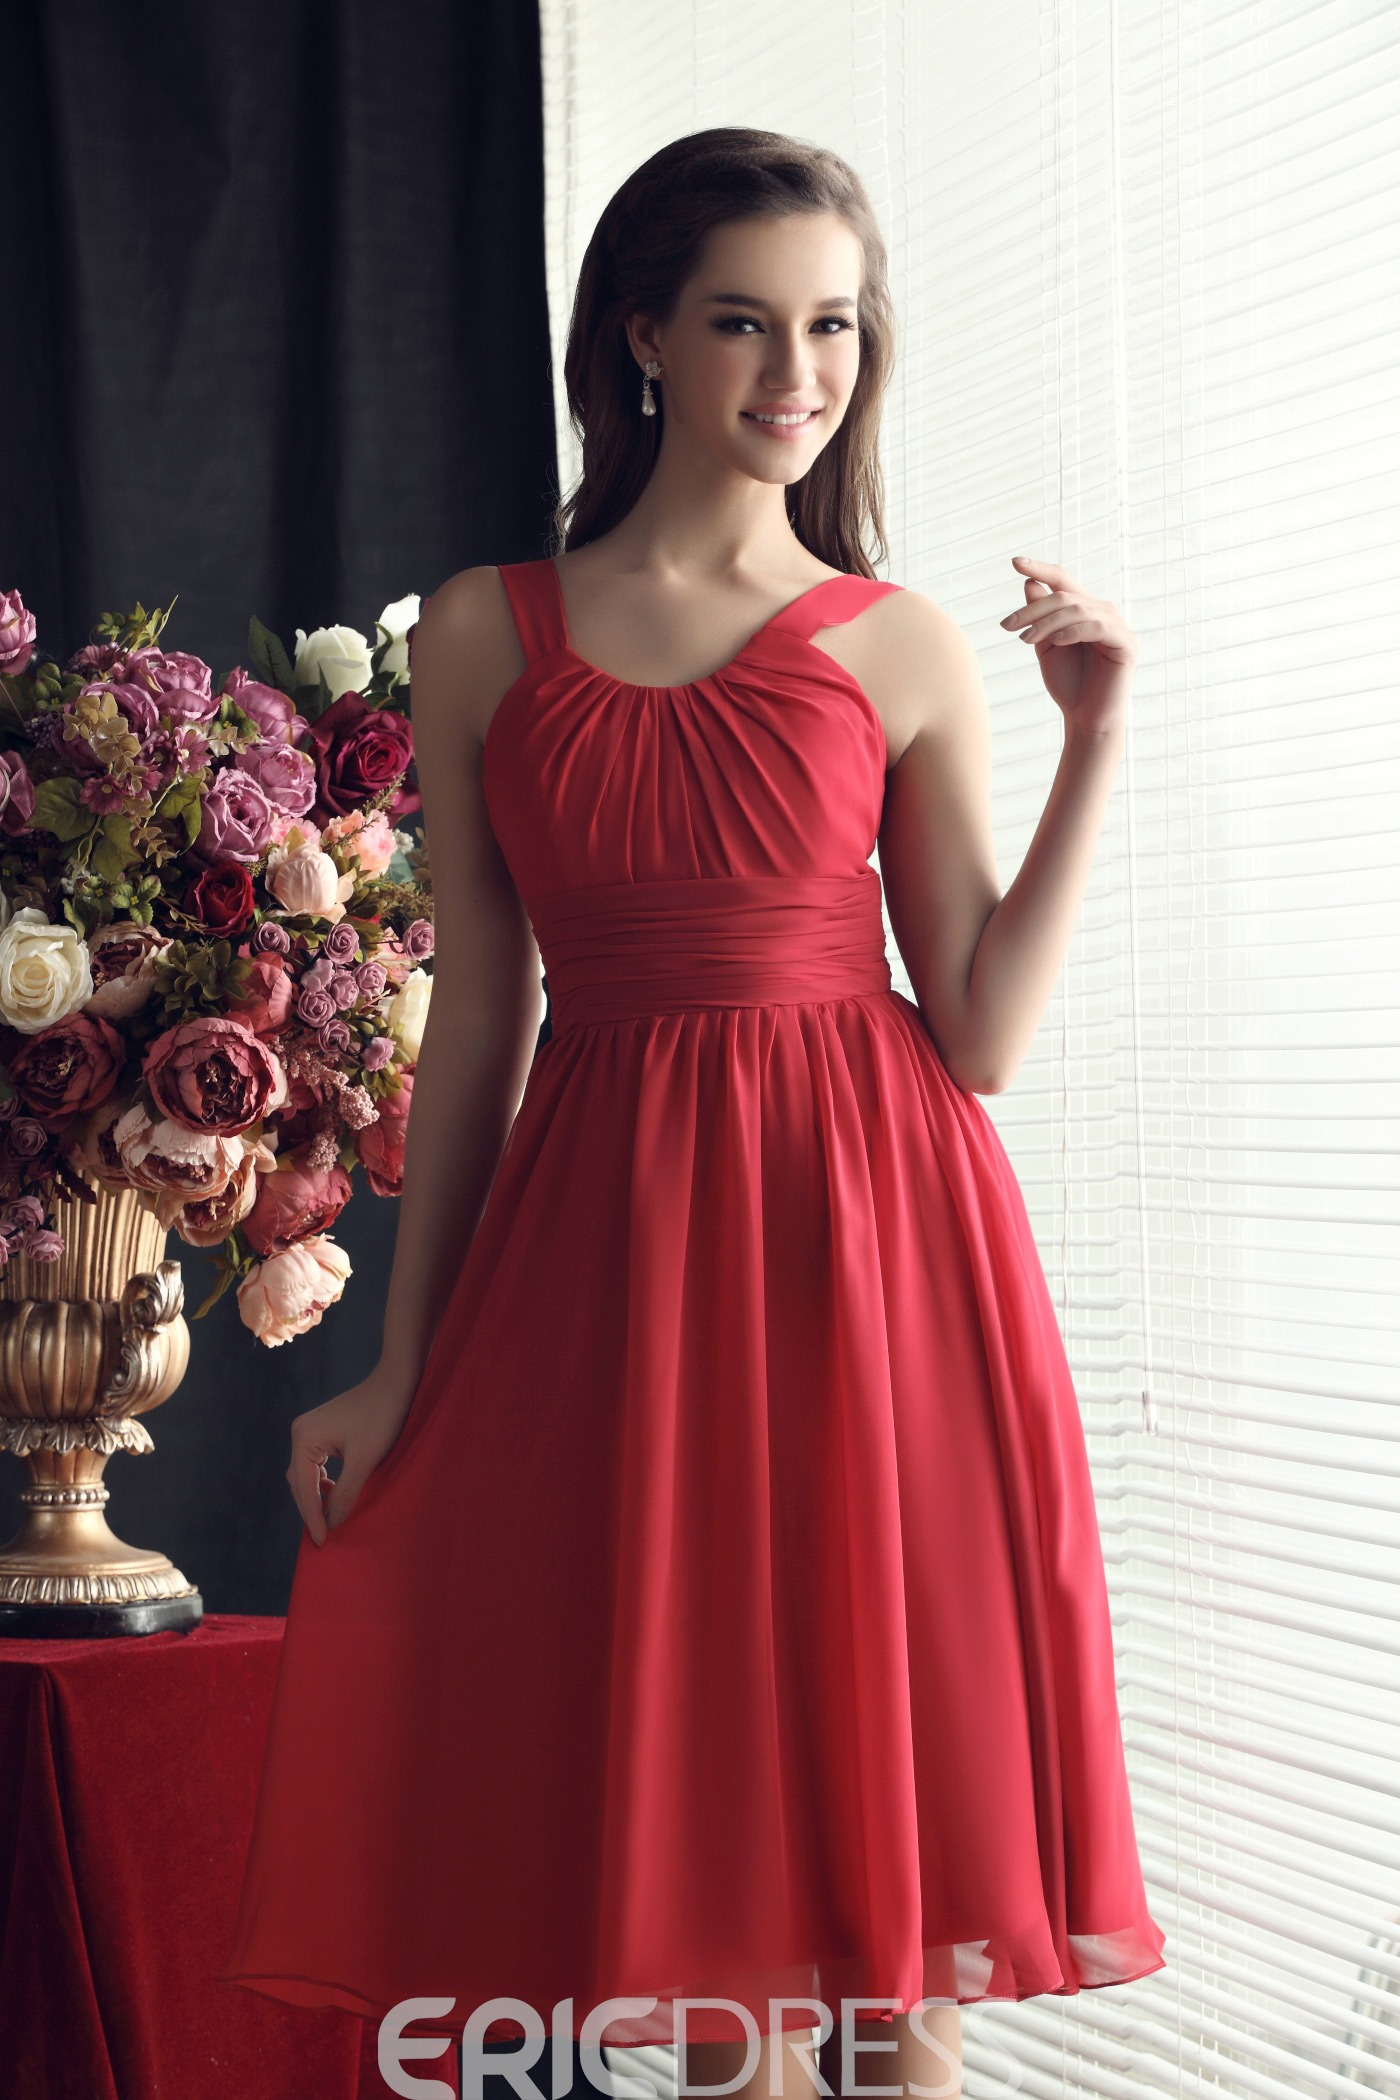 Ruched Straps A-line Knee-length Sandra's Bridesmaid Dress